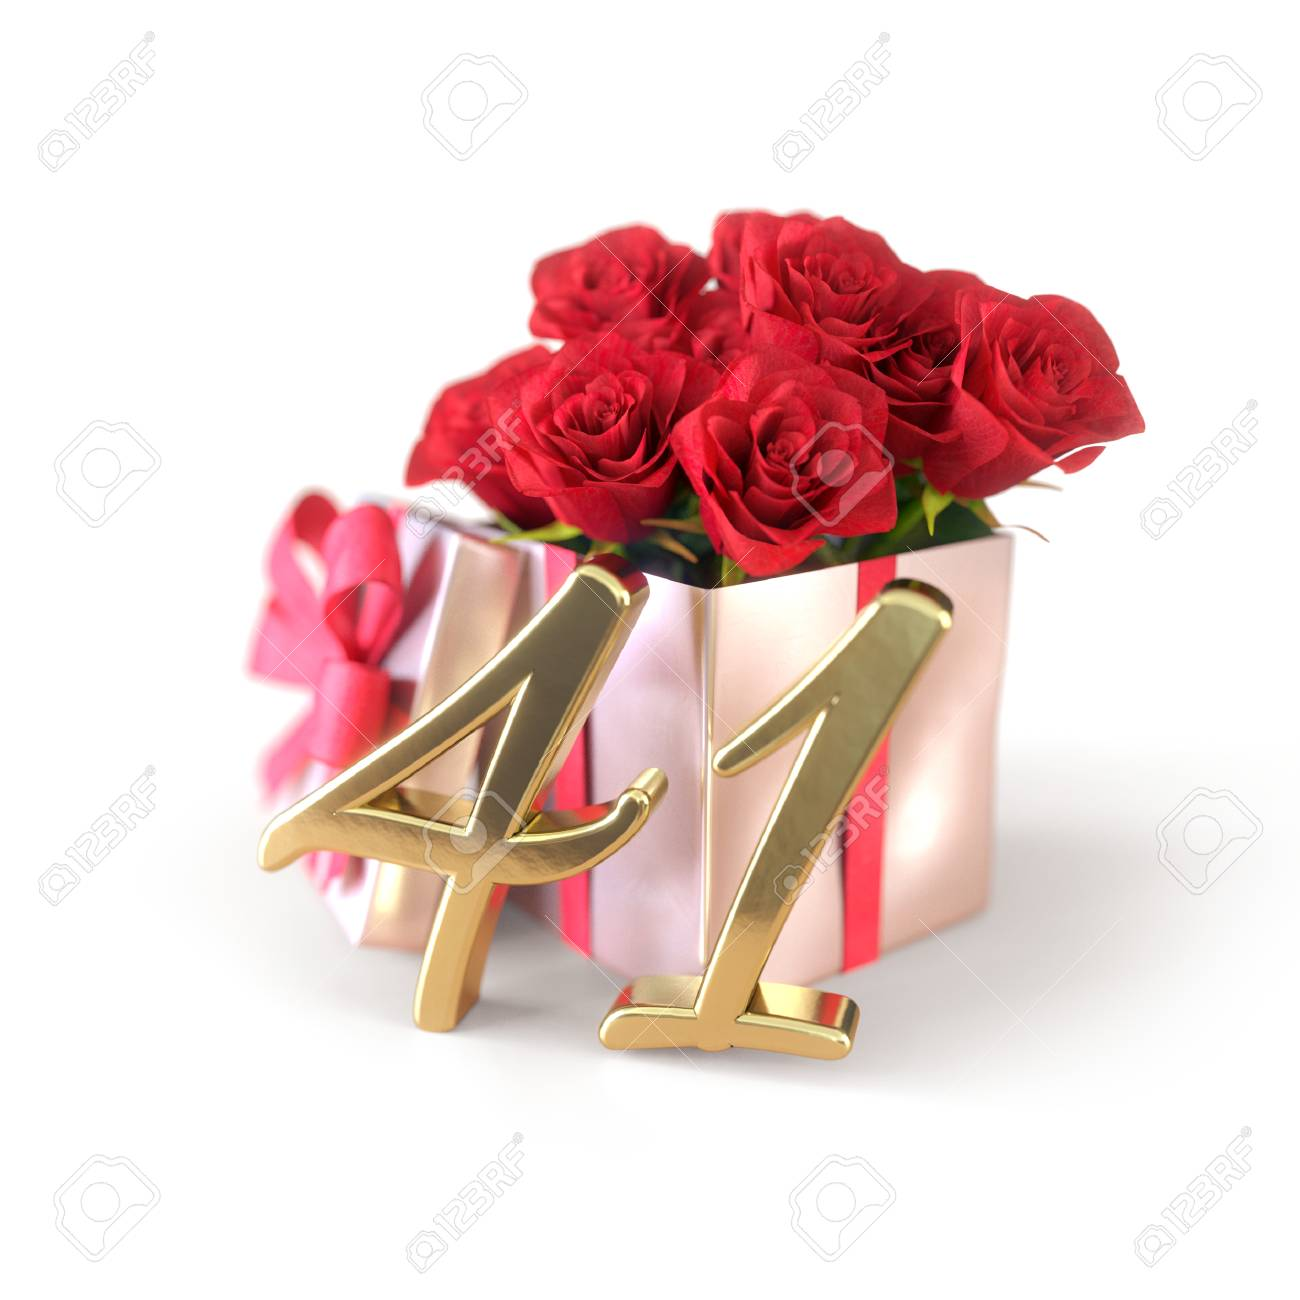 Birthday Concept With Red Roses In Gift Isolated On White Background